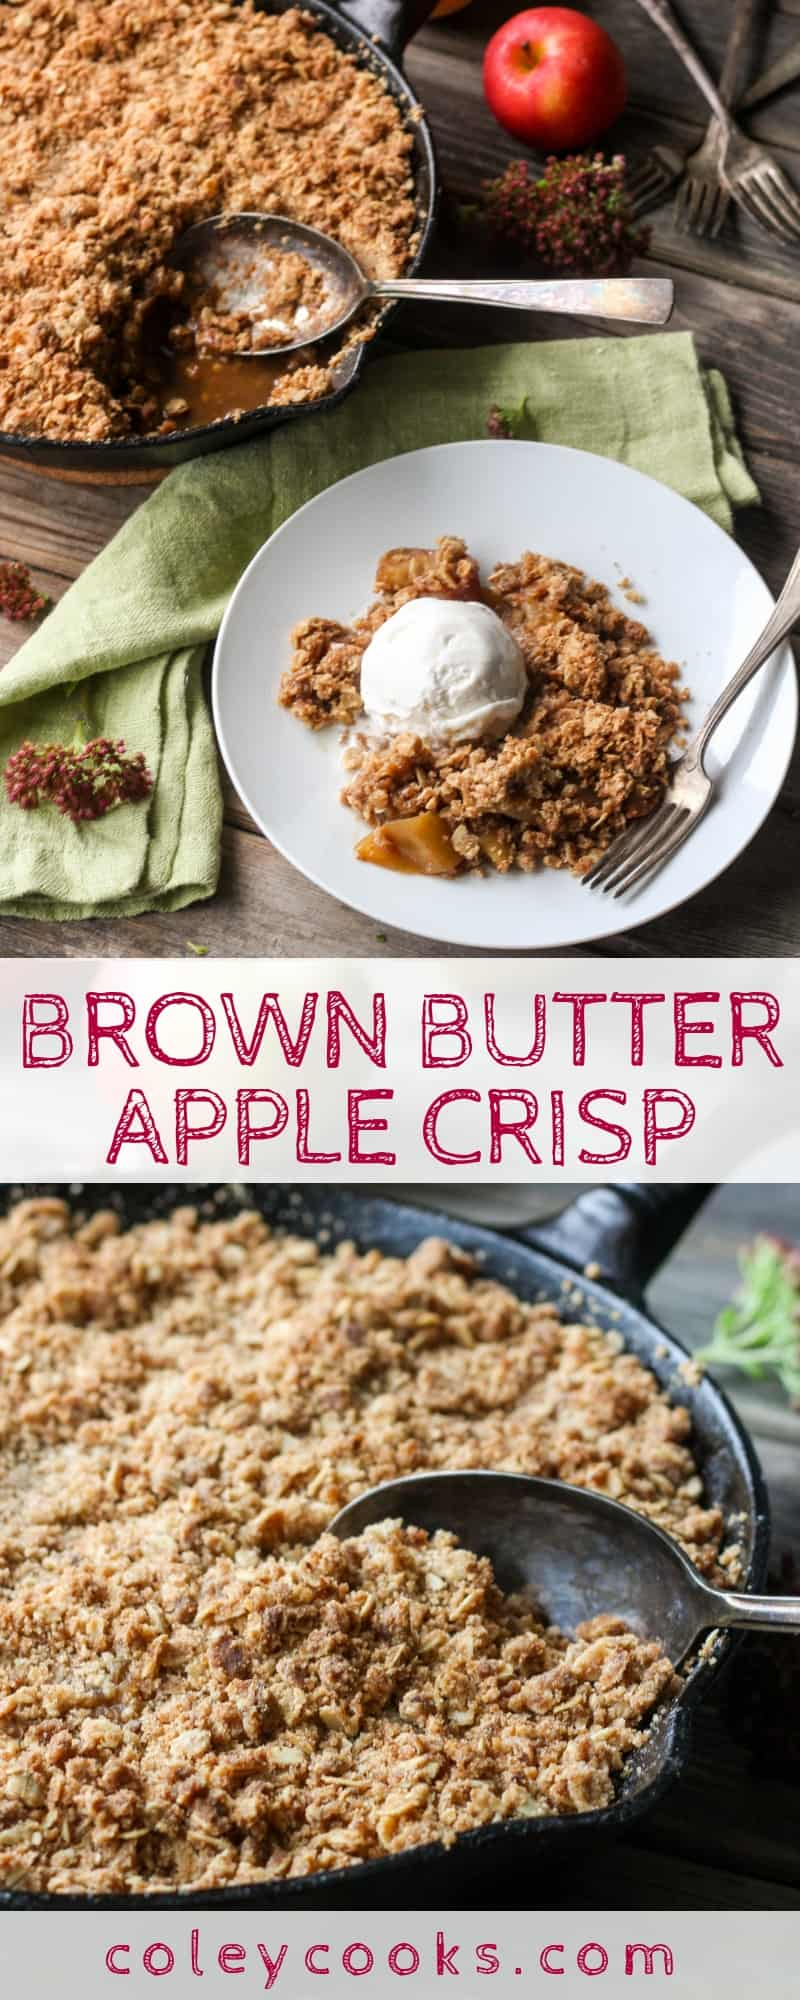 BROWN BUTTER APPLE CRISP | A delicious twist on a classic apple crisp made with nutty brown butter and a crumbly oat topping! #apples #apple #crisp #dessert #recipe #applecrisp #cinnamon #brownbutter #thanksgiving #fall | ColeyCooks.com